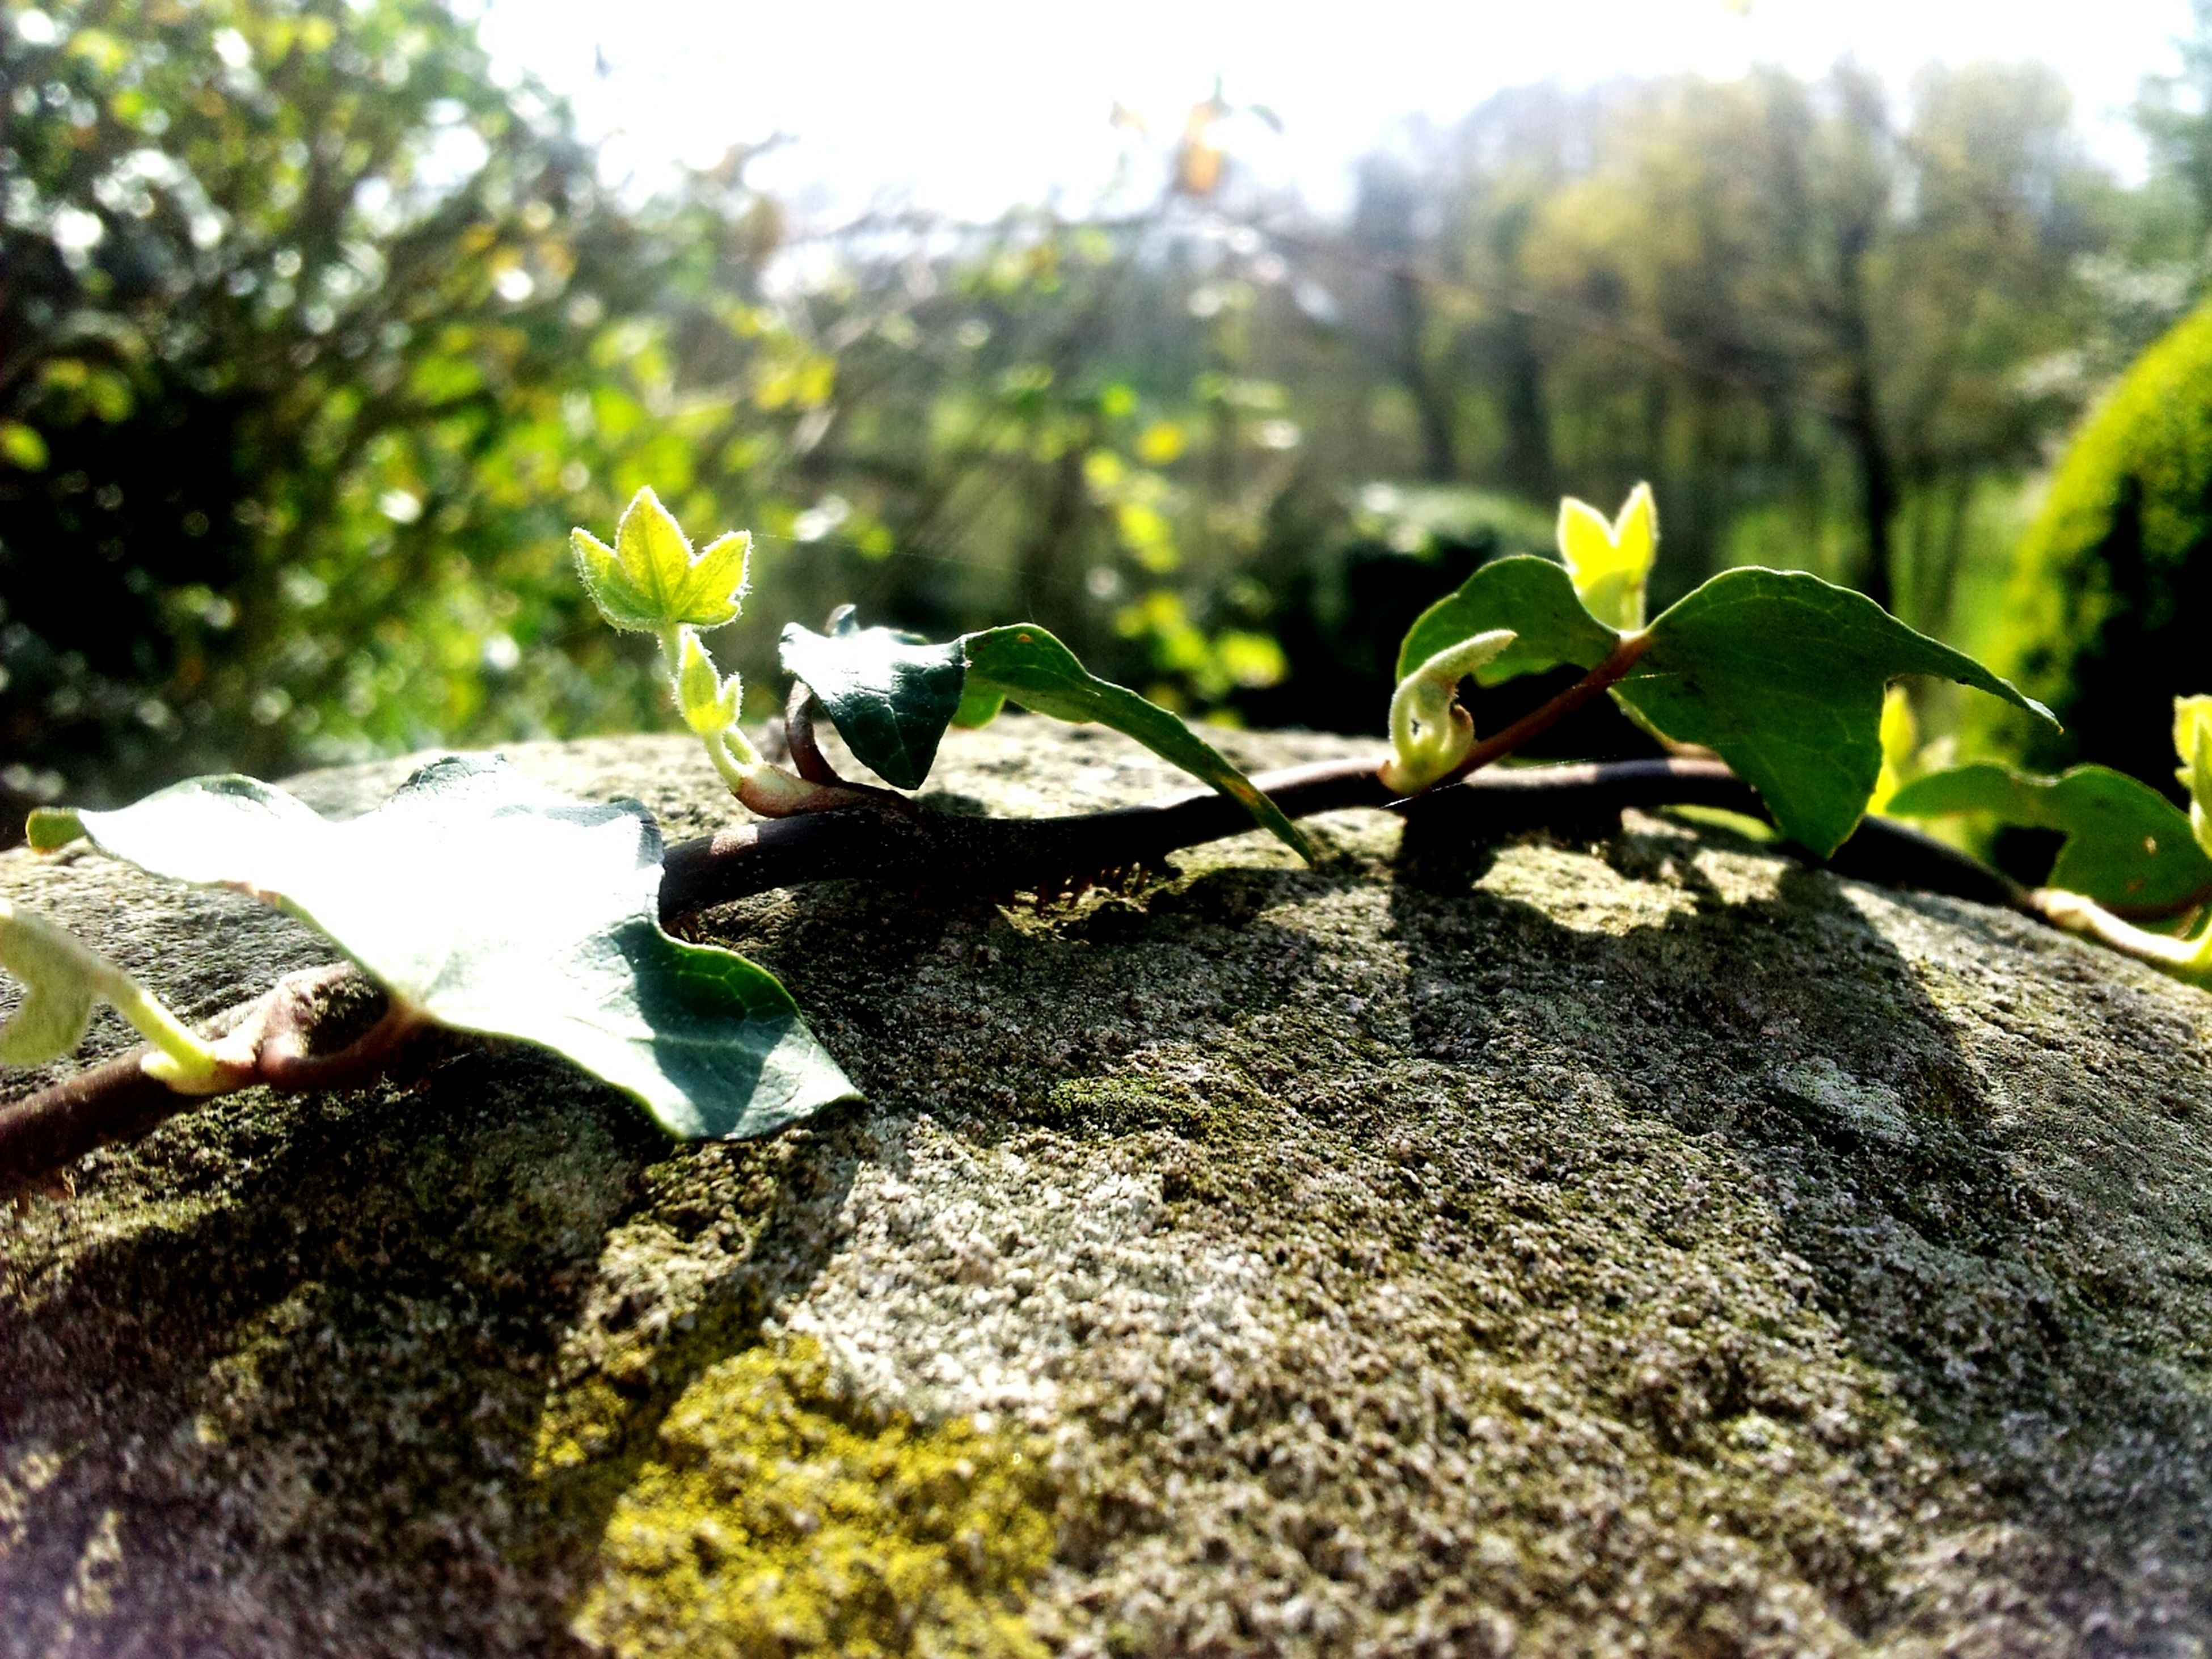 leaf, tree, focus on foreground, nature, growth, selective focus, green color, close-up, rock - object, day, outdoors, tranquility, plant, no people, sunlight, growing, beauty in nature, branch, surface level, sky